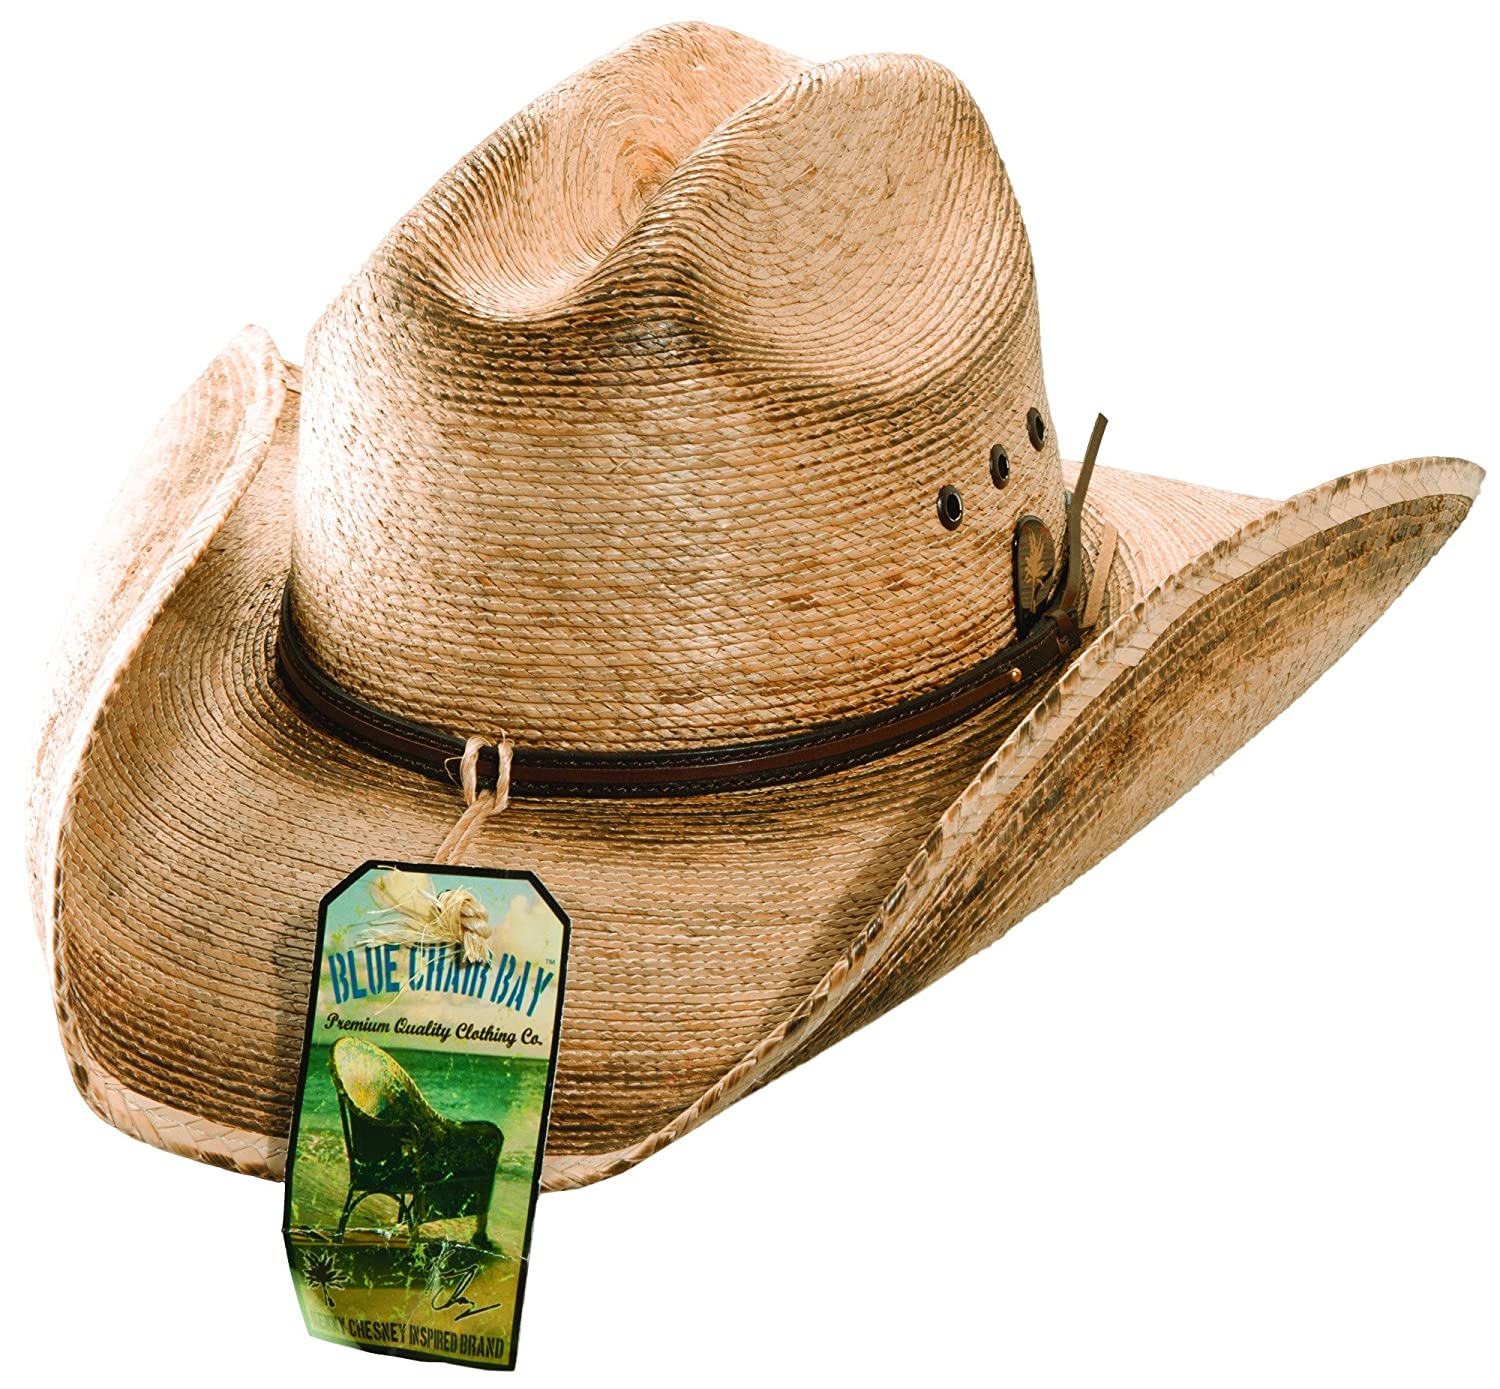 kenny chesney blue chair bay hats top 10 high chairs canada for sale download images photos and